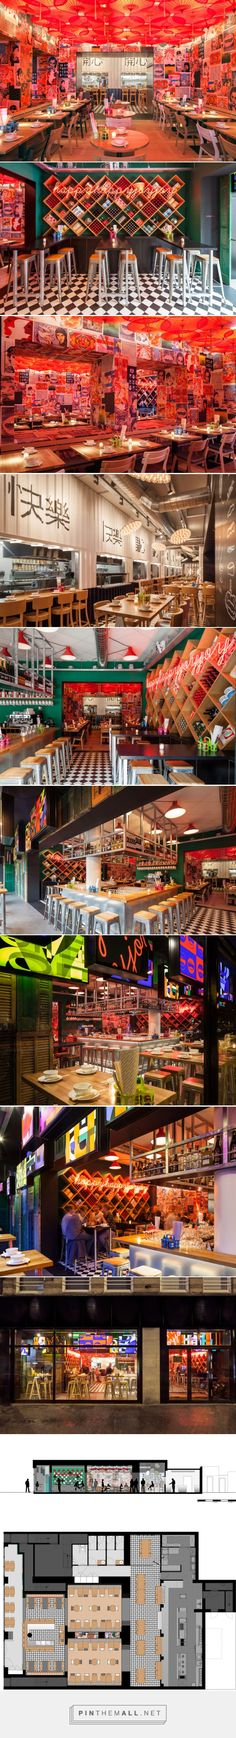 concrete brings the atmosphere of asian market stalls to amsterdam - created via http://pinthemall.net